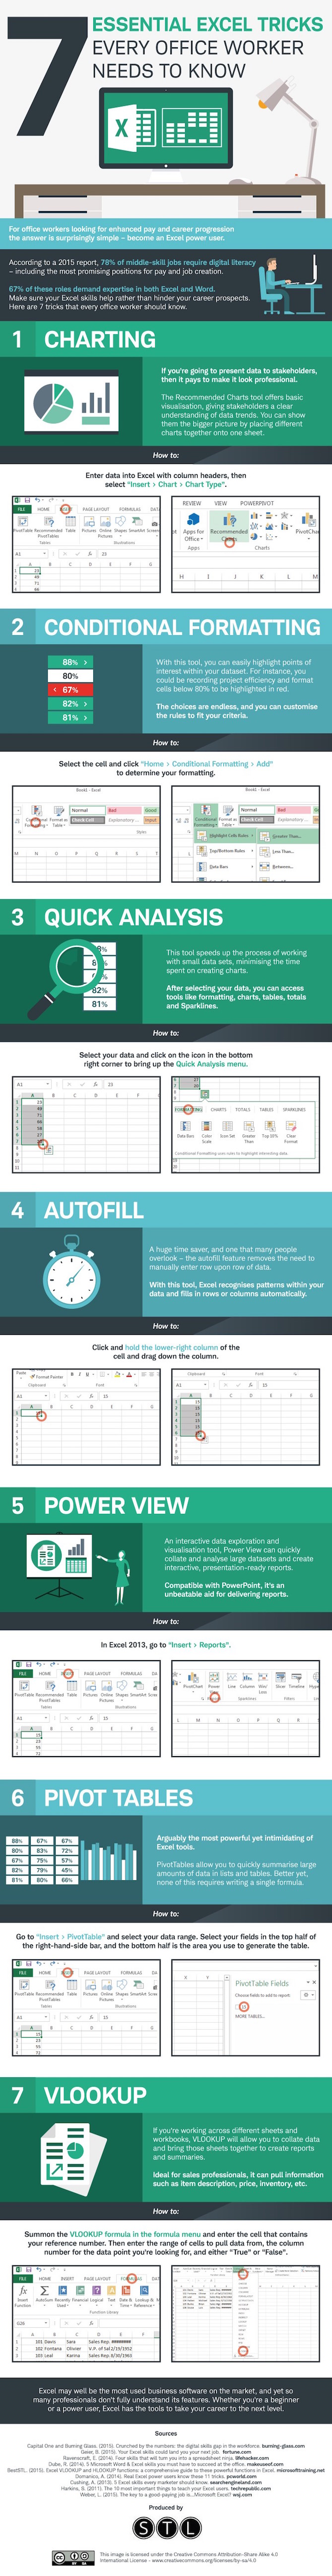 the 7 excel tricks every office worker should know infographic page